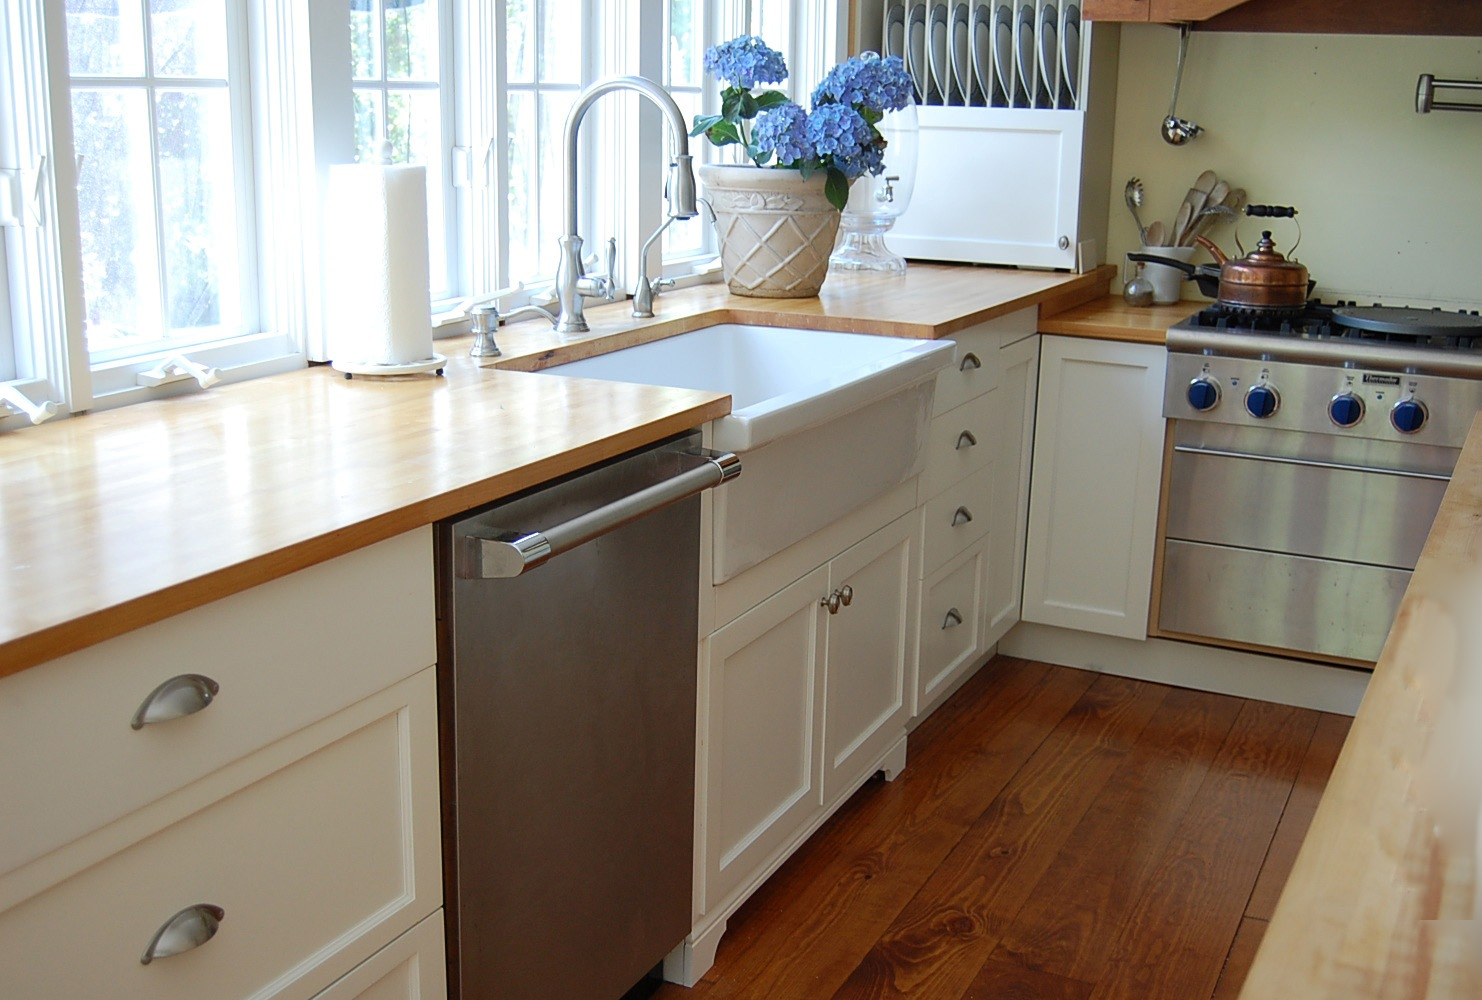 Ikea kitchen sink kitchen ideas for Kosher countertops